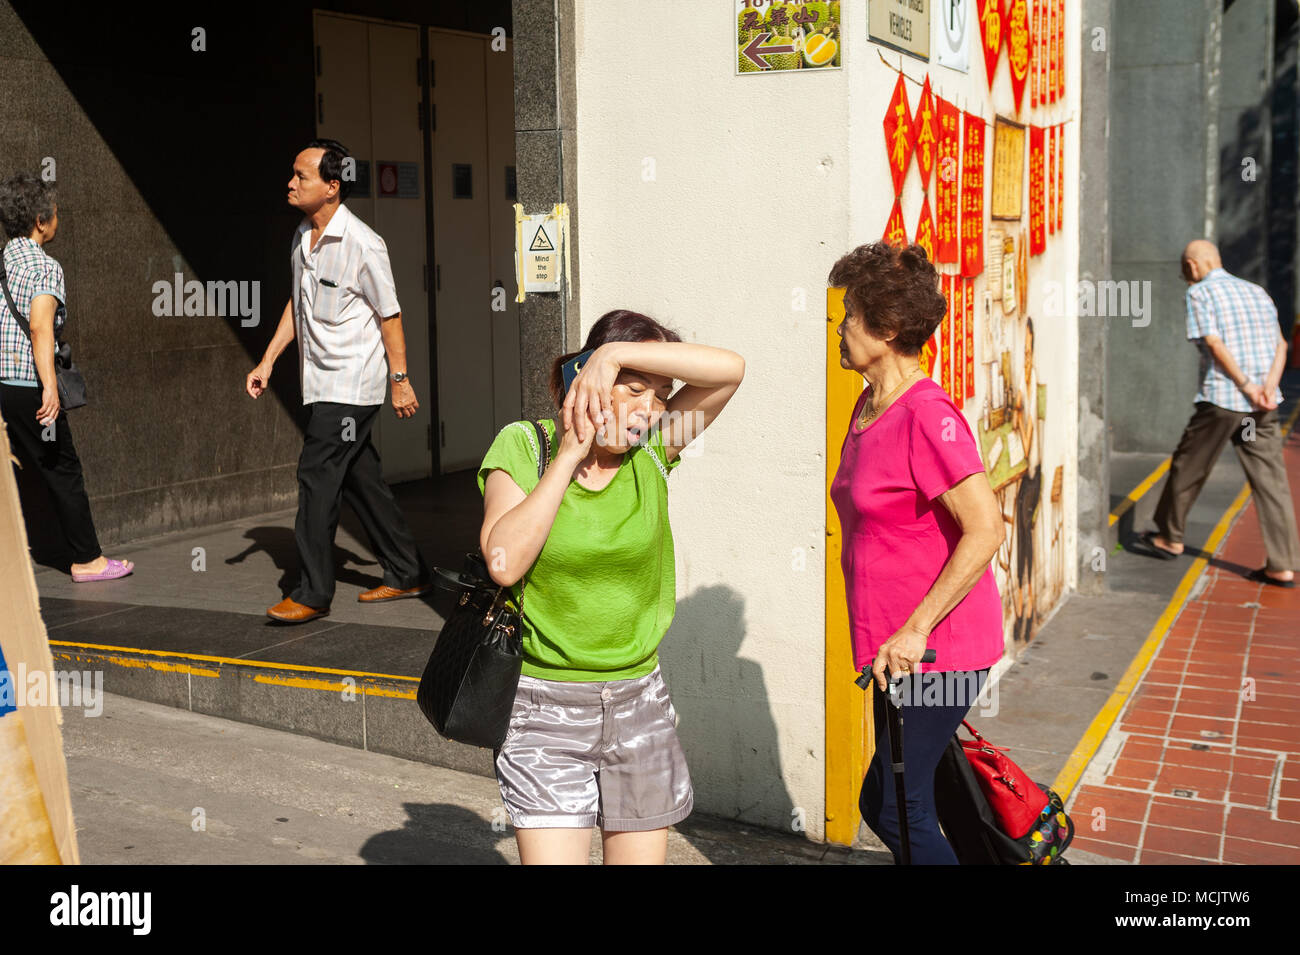 04.04.2018, Singapore, Republic of Singapore, Asia - A woman walks down a street in Singapore's Chinatown district and talks on the phone. - Stock Image